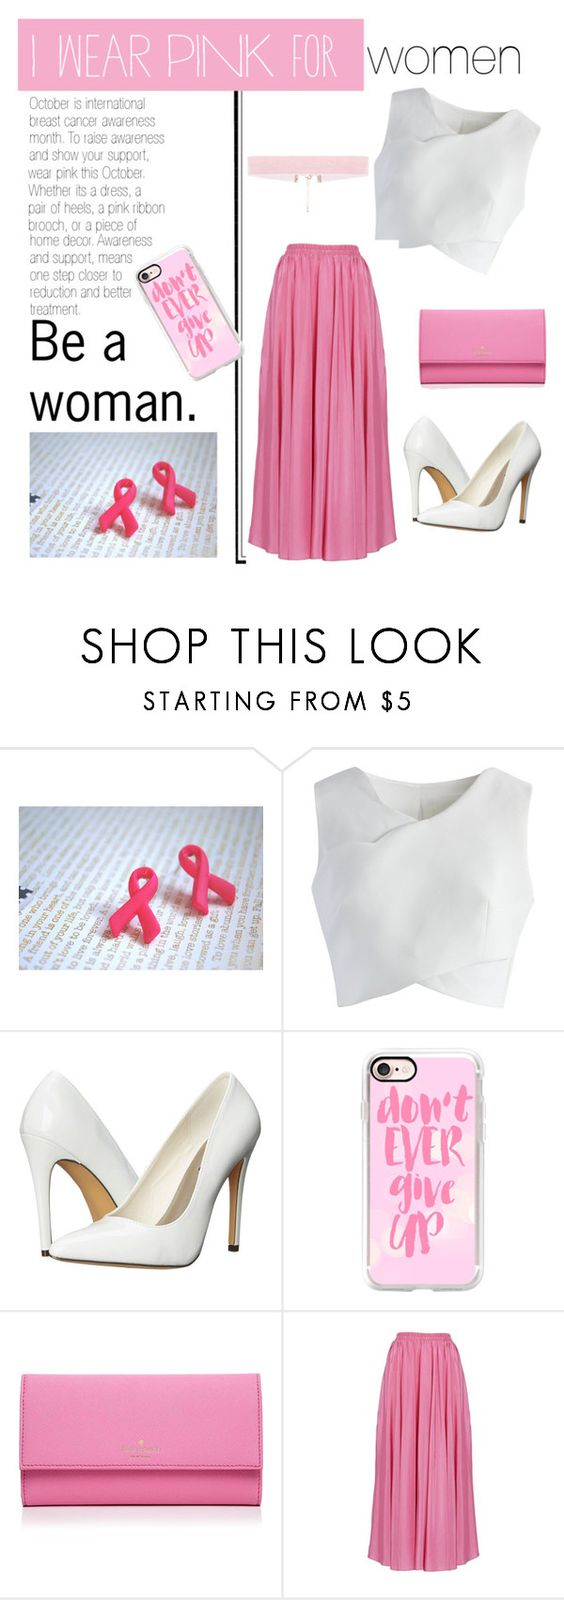 """""""Wear Pink This October"""" by cara-walker ❤ liked on Polyvore featuring Chicwish, Michael Antonio, Casetify, Kate Spade, breastcancerawareness, wearpink, IWearPinkFor, octoberisbreastcancerawarenessmonth and IWearPinkForallwomen"""